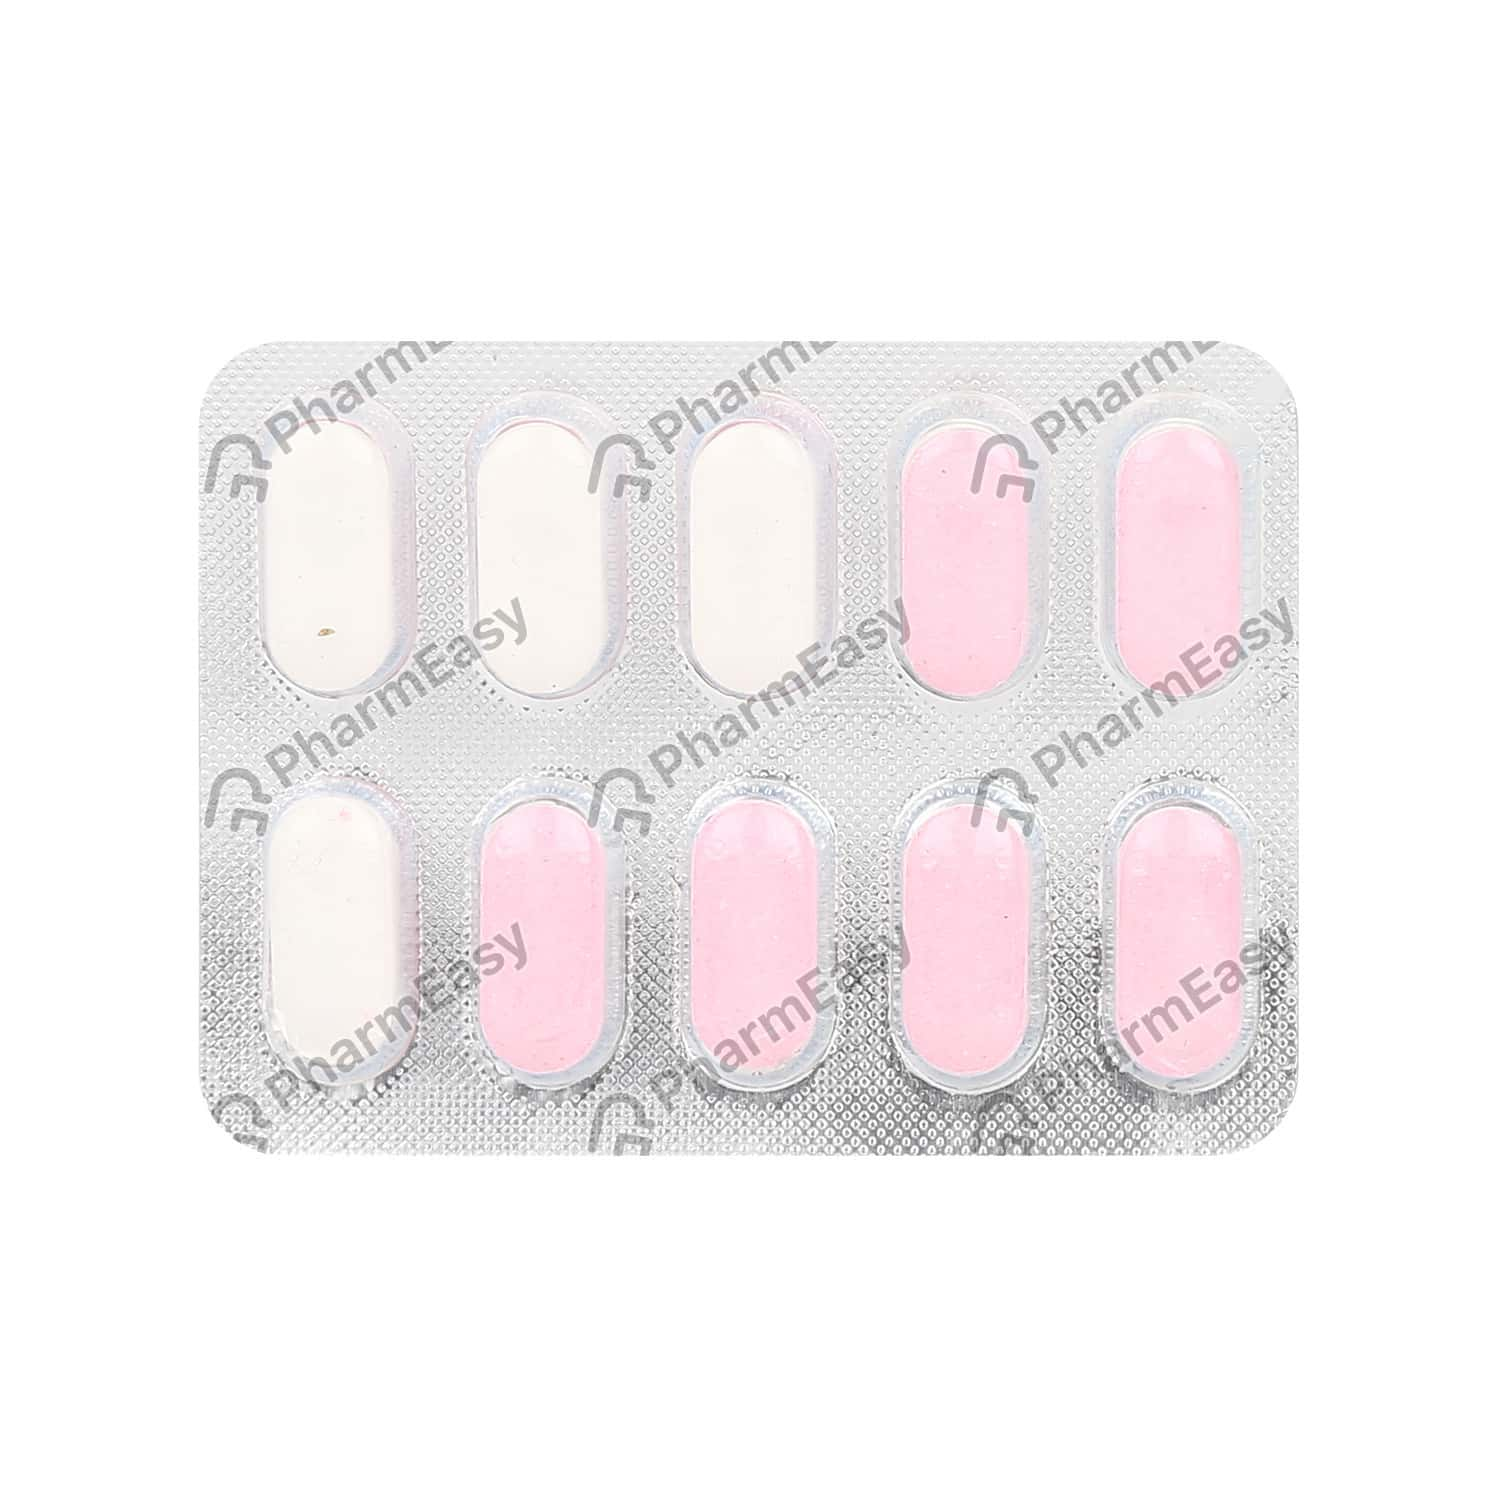 Wonride Mv 1mg Tablet